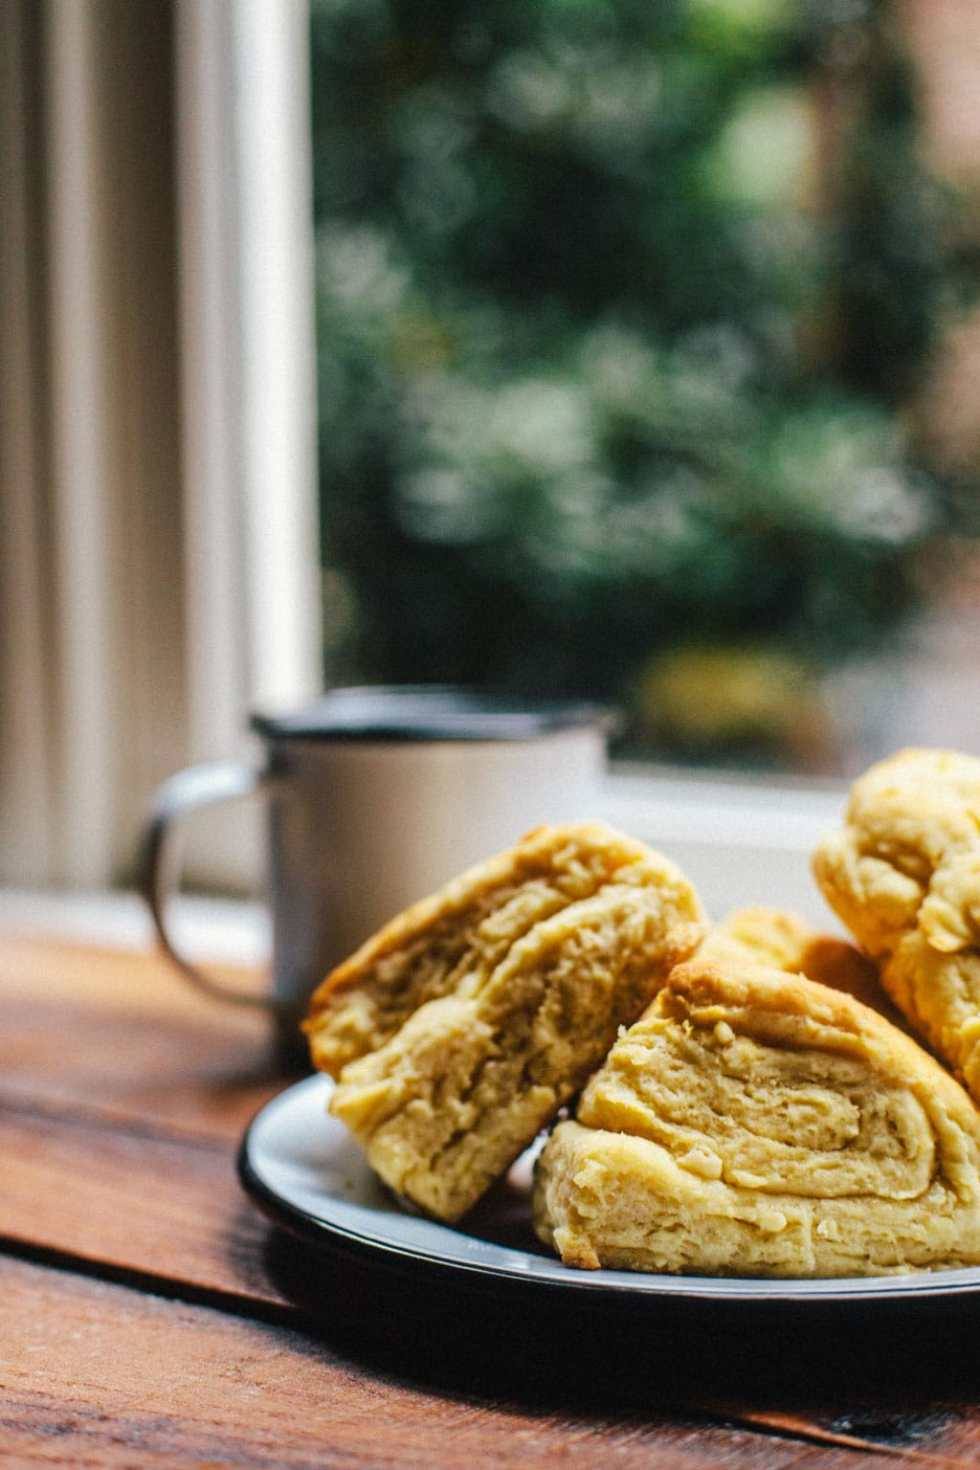 A side view of three fluffy, flaky buttermilk biscuits with coffee and a window in the background